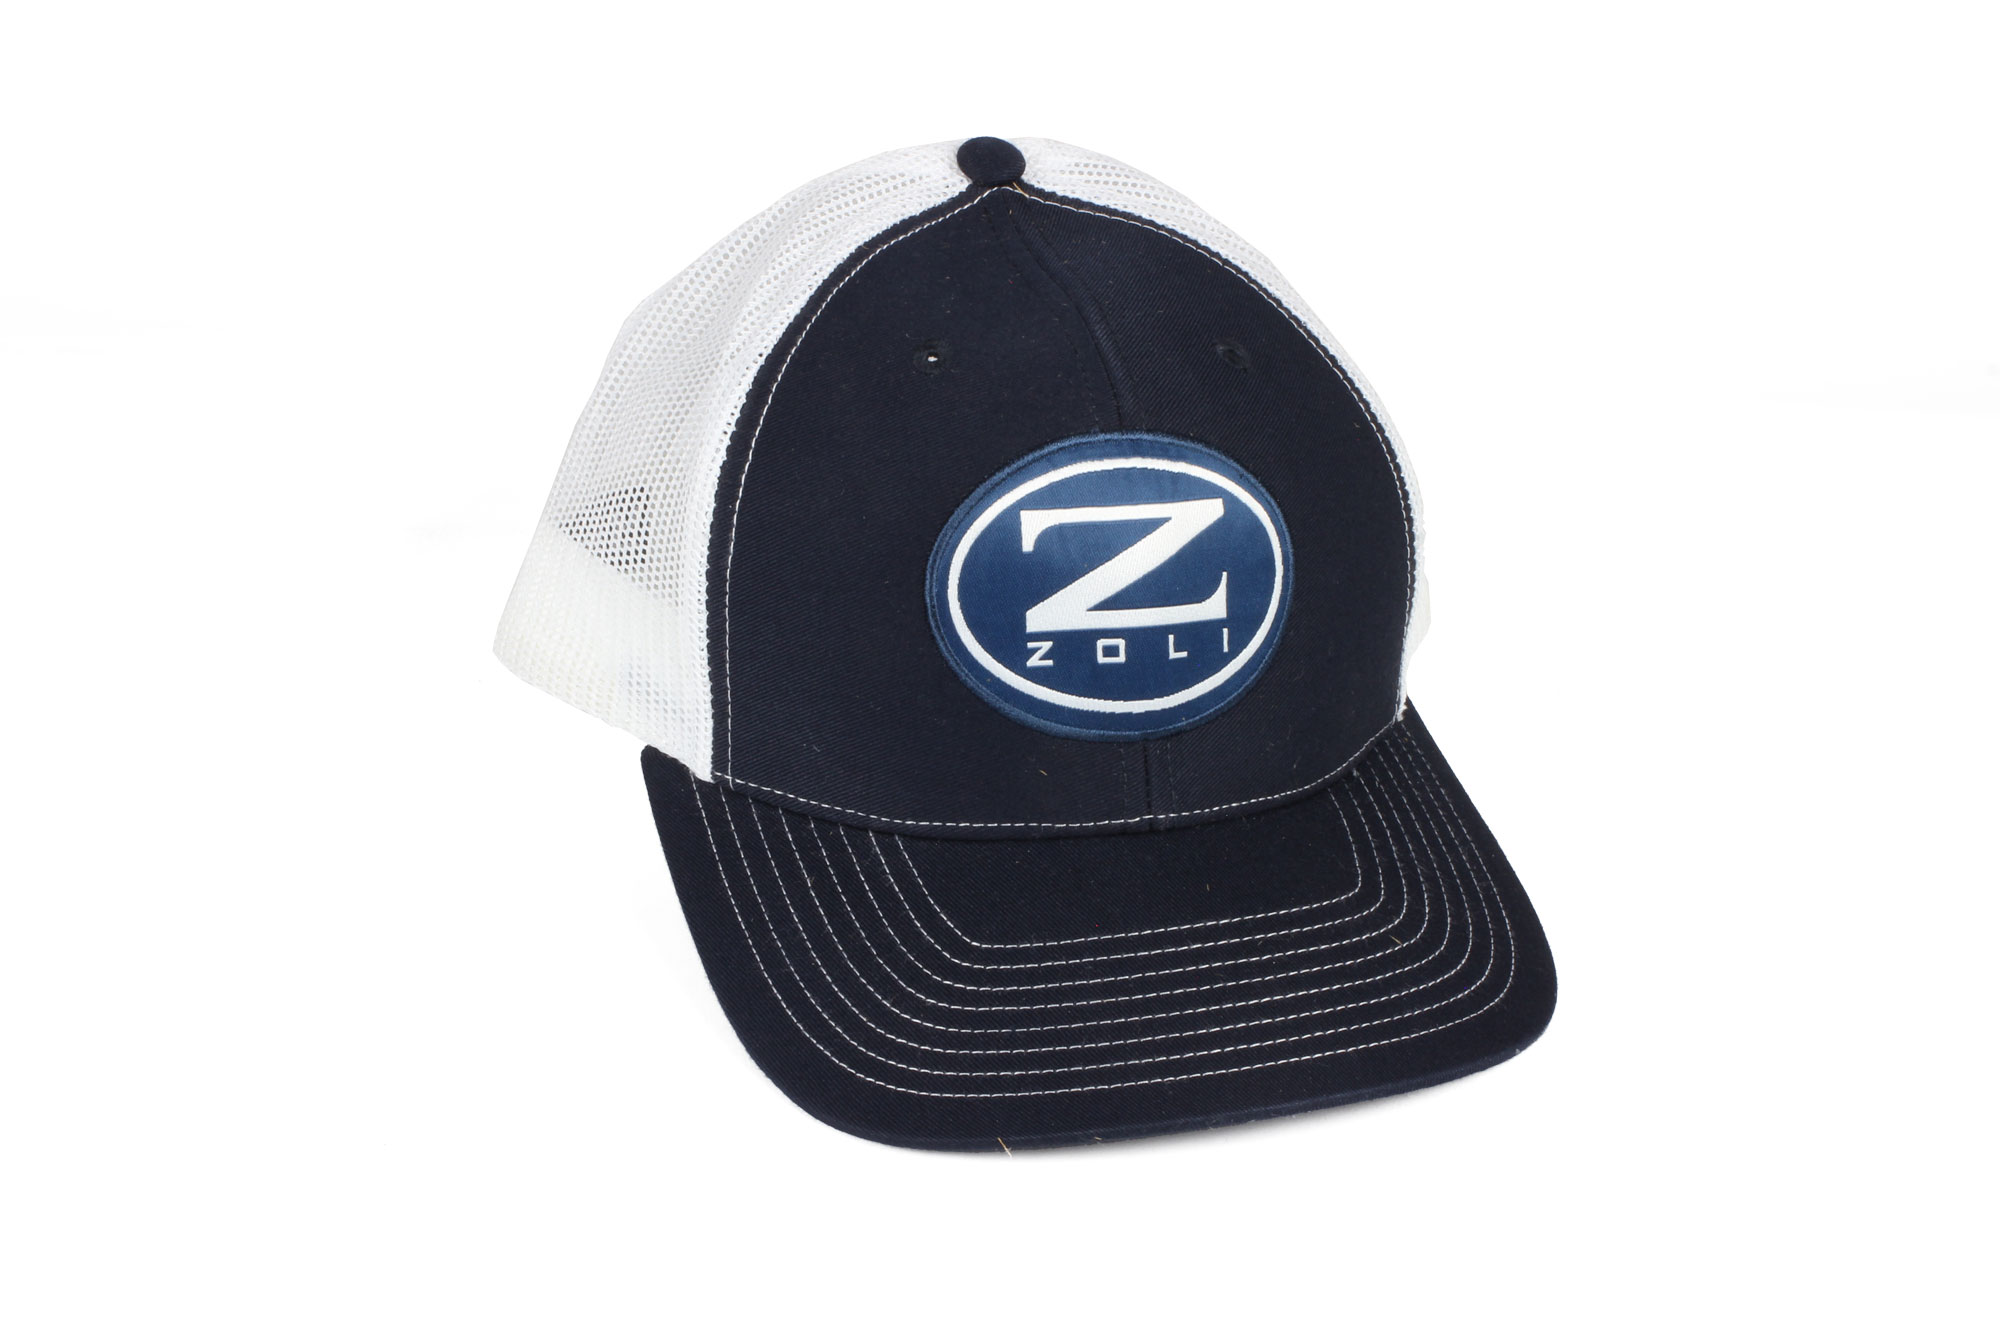 Zoli Embroidered Snap Back Hat (Navy)